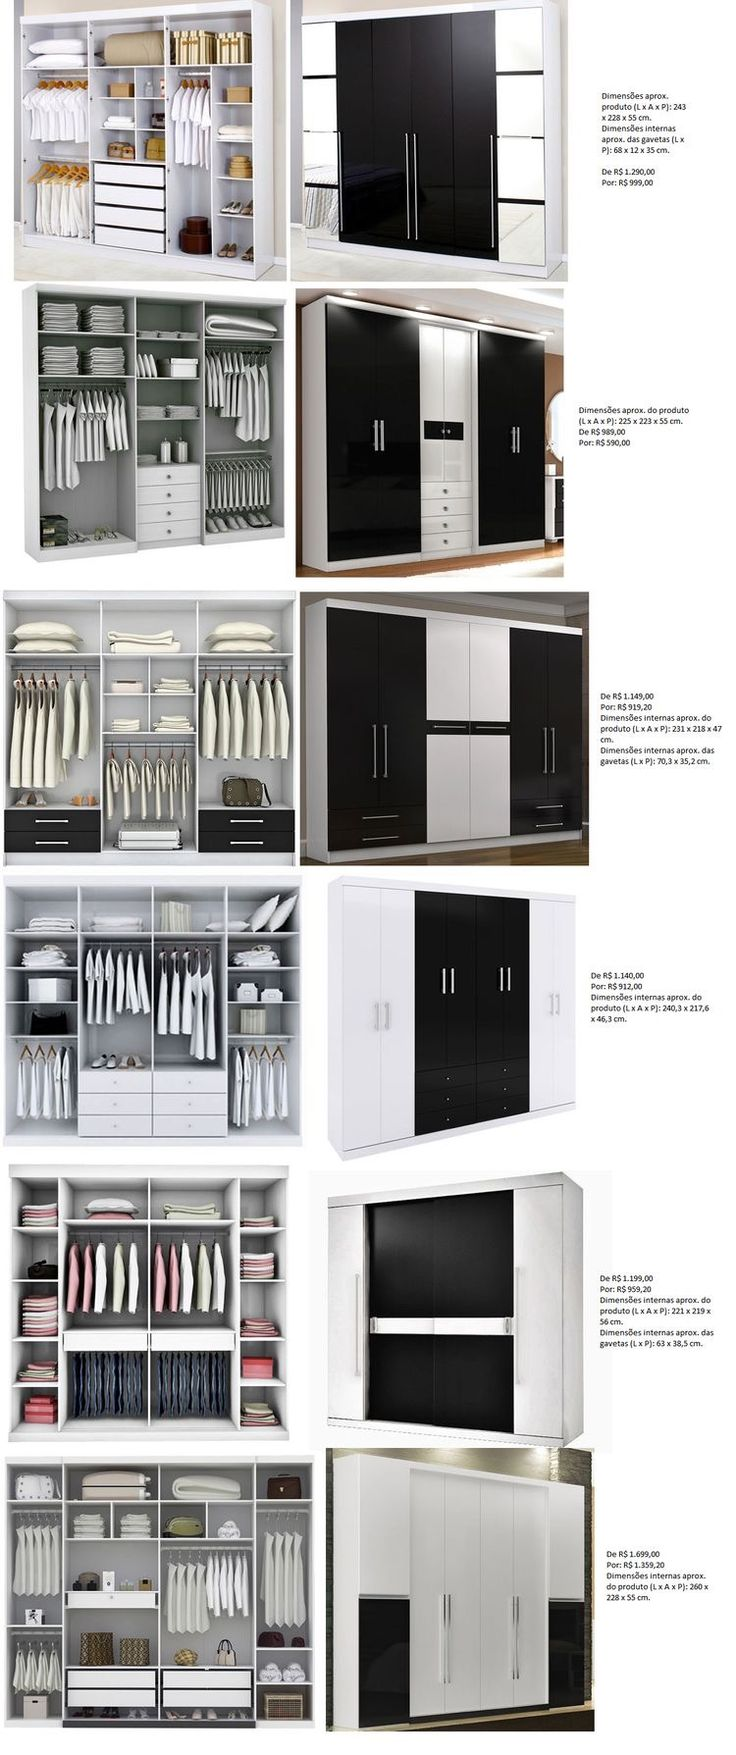 Drawers accessible when doors are closed...